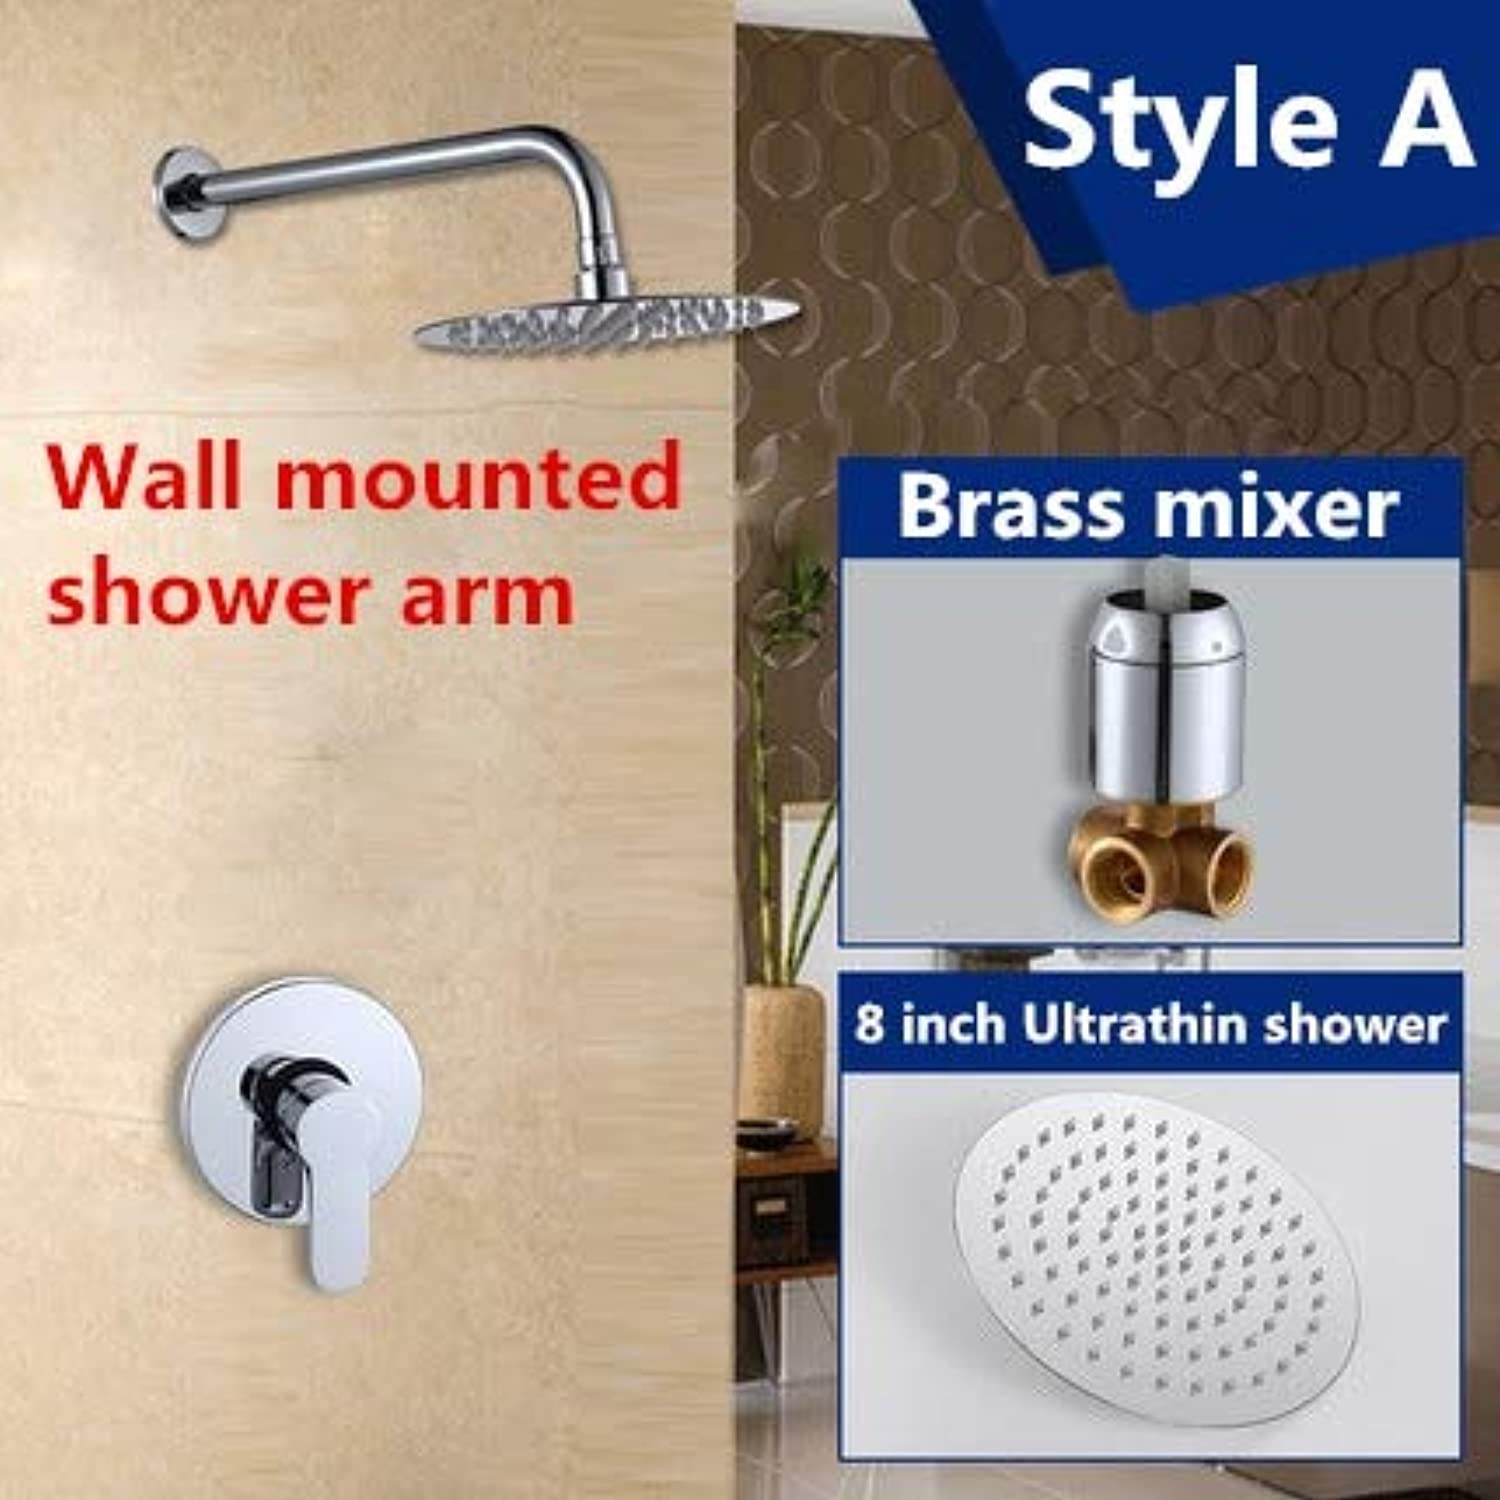 Free shipping in wall luxury bathroom showers brass chrome bathroom shower faucet with 8 inch shower head,rain shower sets head,Weiß